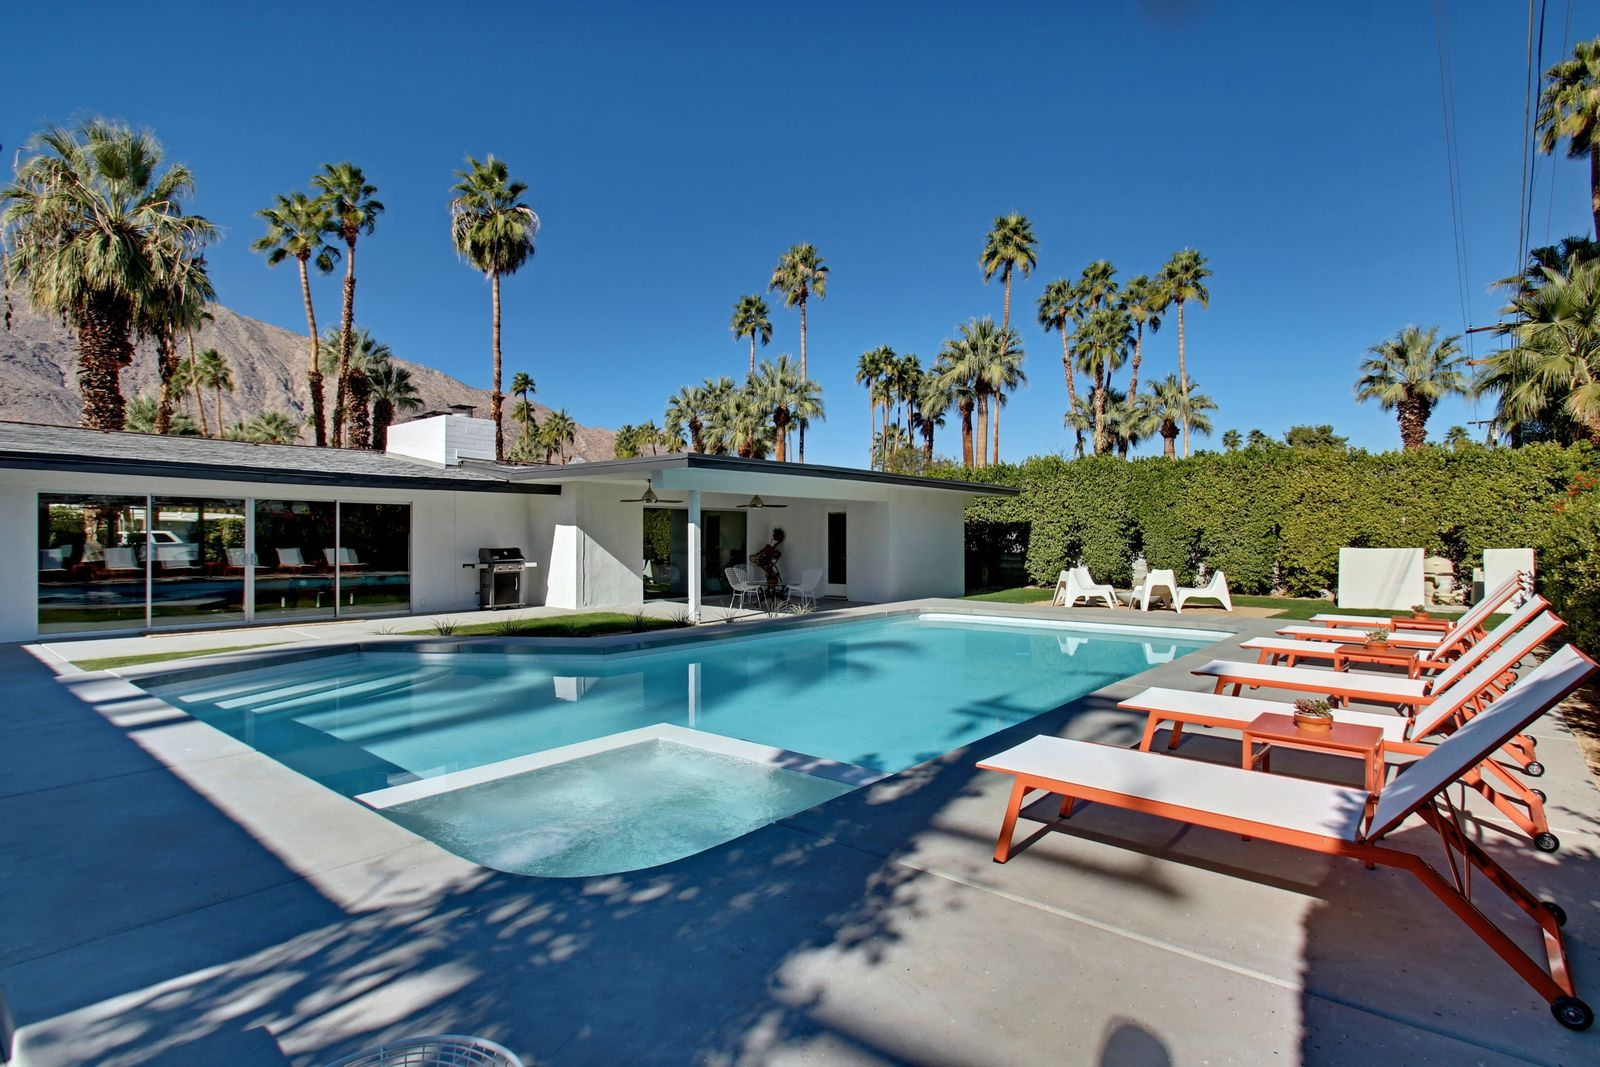 Vacation In Style At The Hollywood Glamour Palm Springs